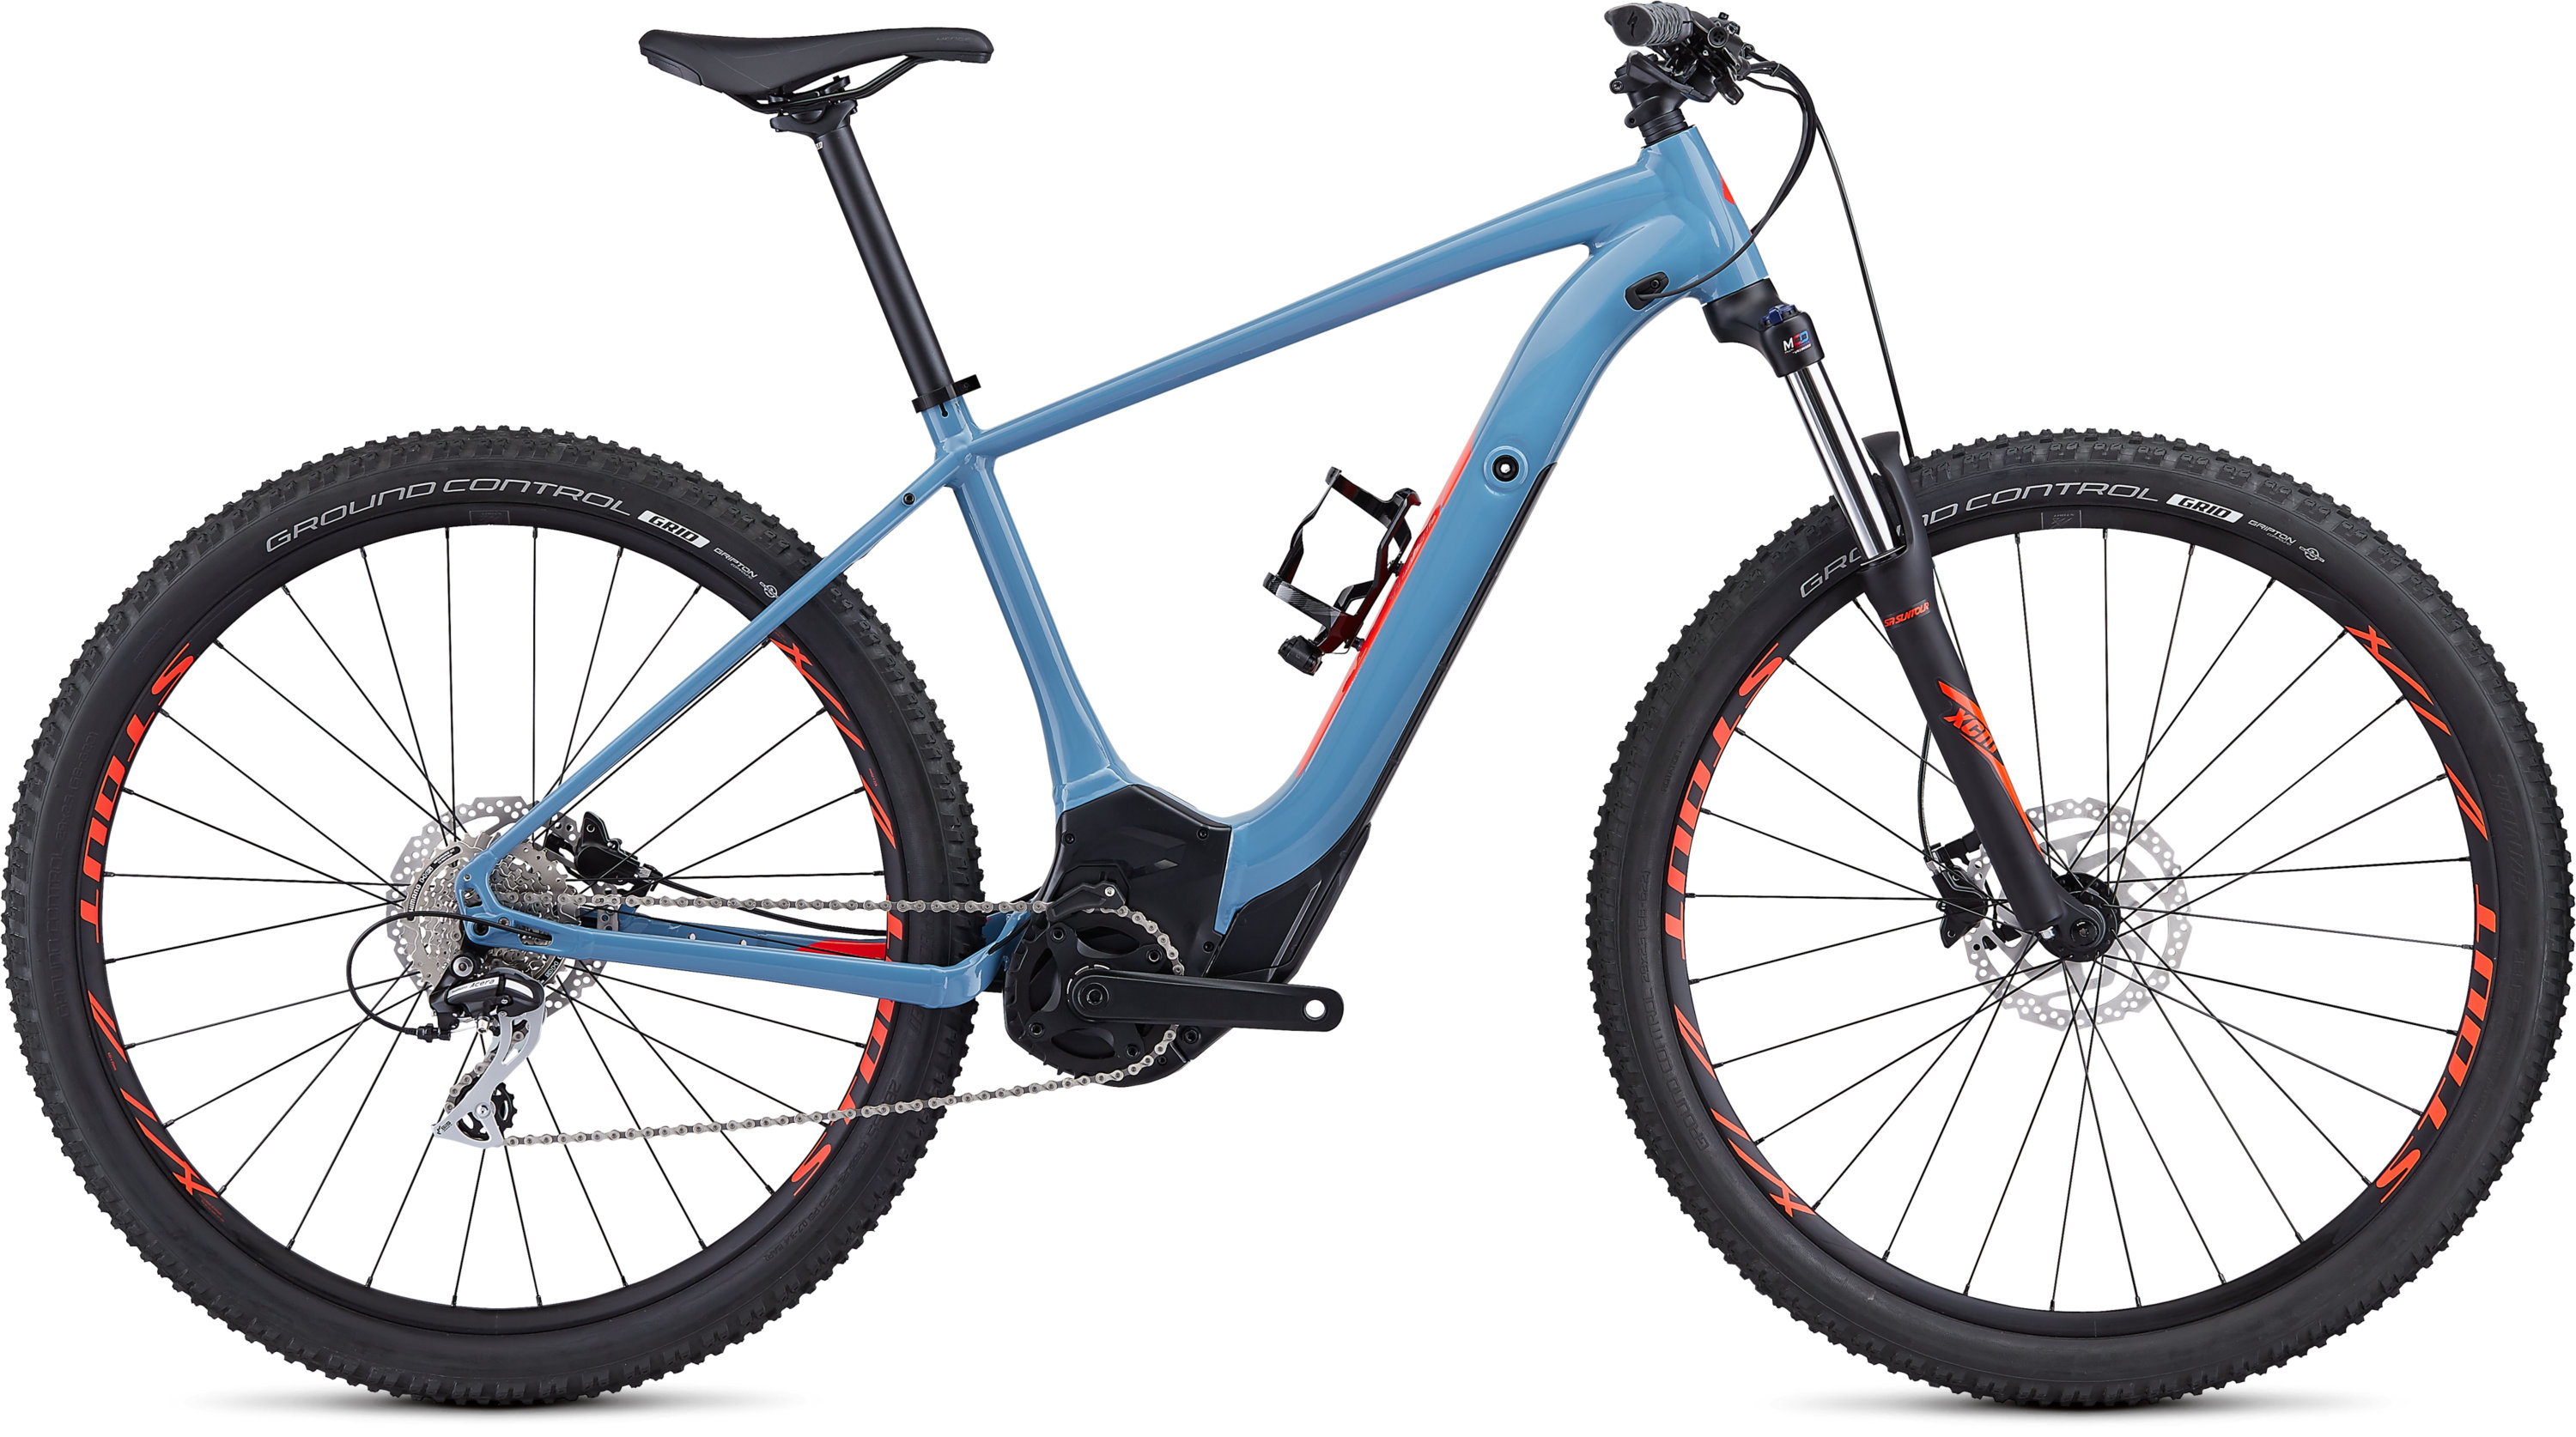 Specialized Men´s Turbo Levo Hardtail 29 Storm Grey/Rocket Red M - Specialized Men´s Turbo Levo Hardtail 29 Storm Grey/Rocket Red M